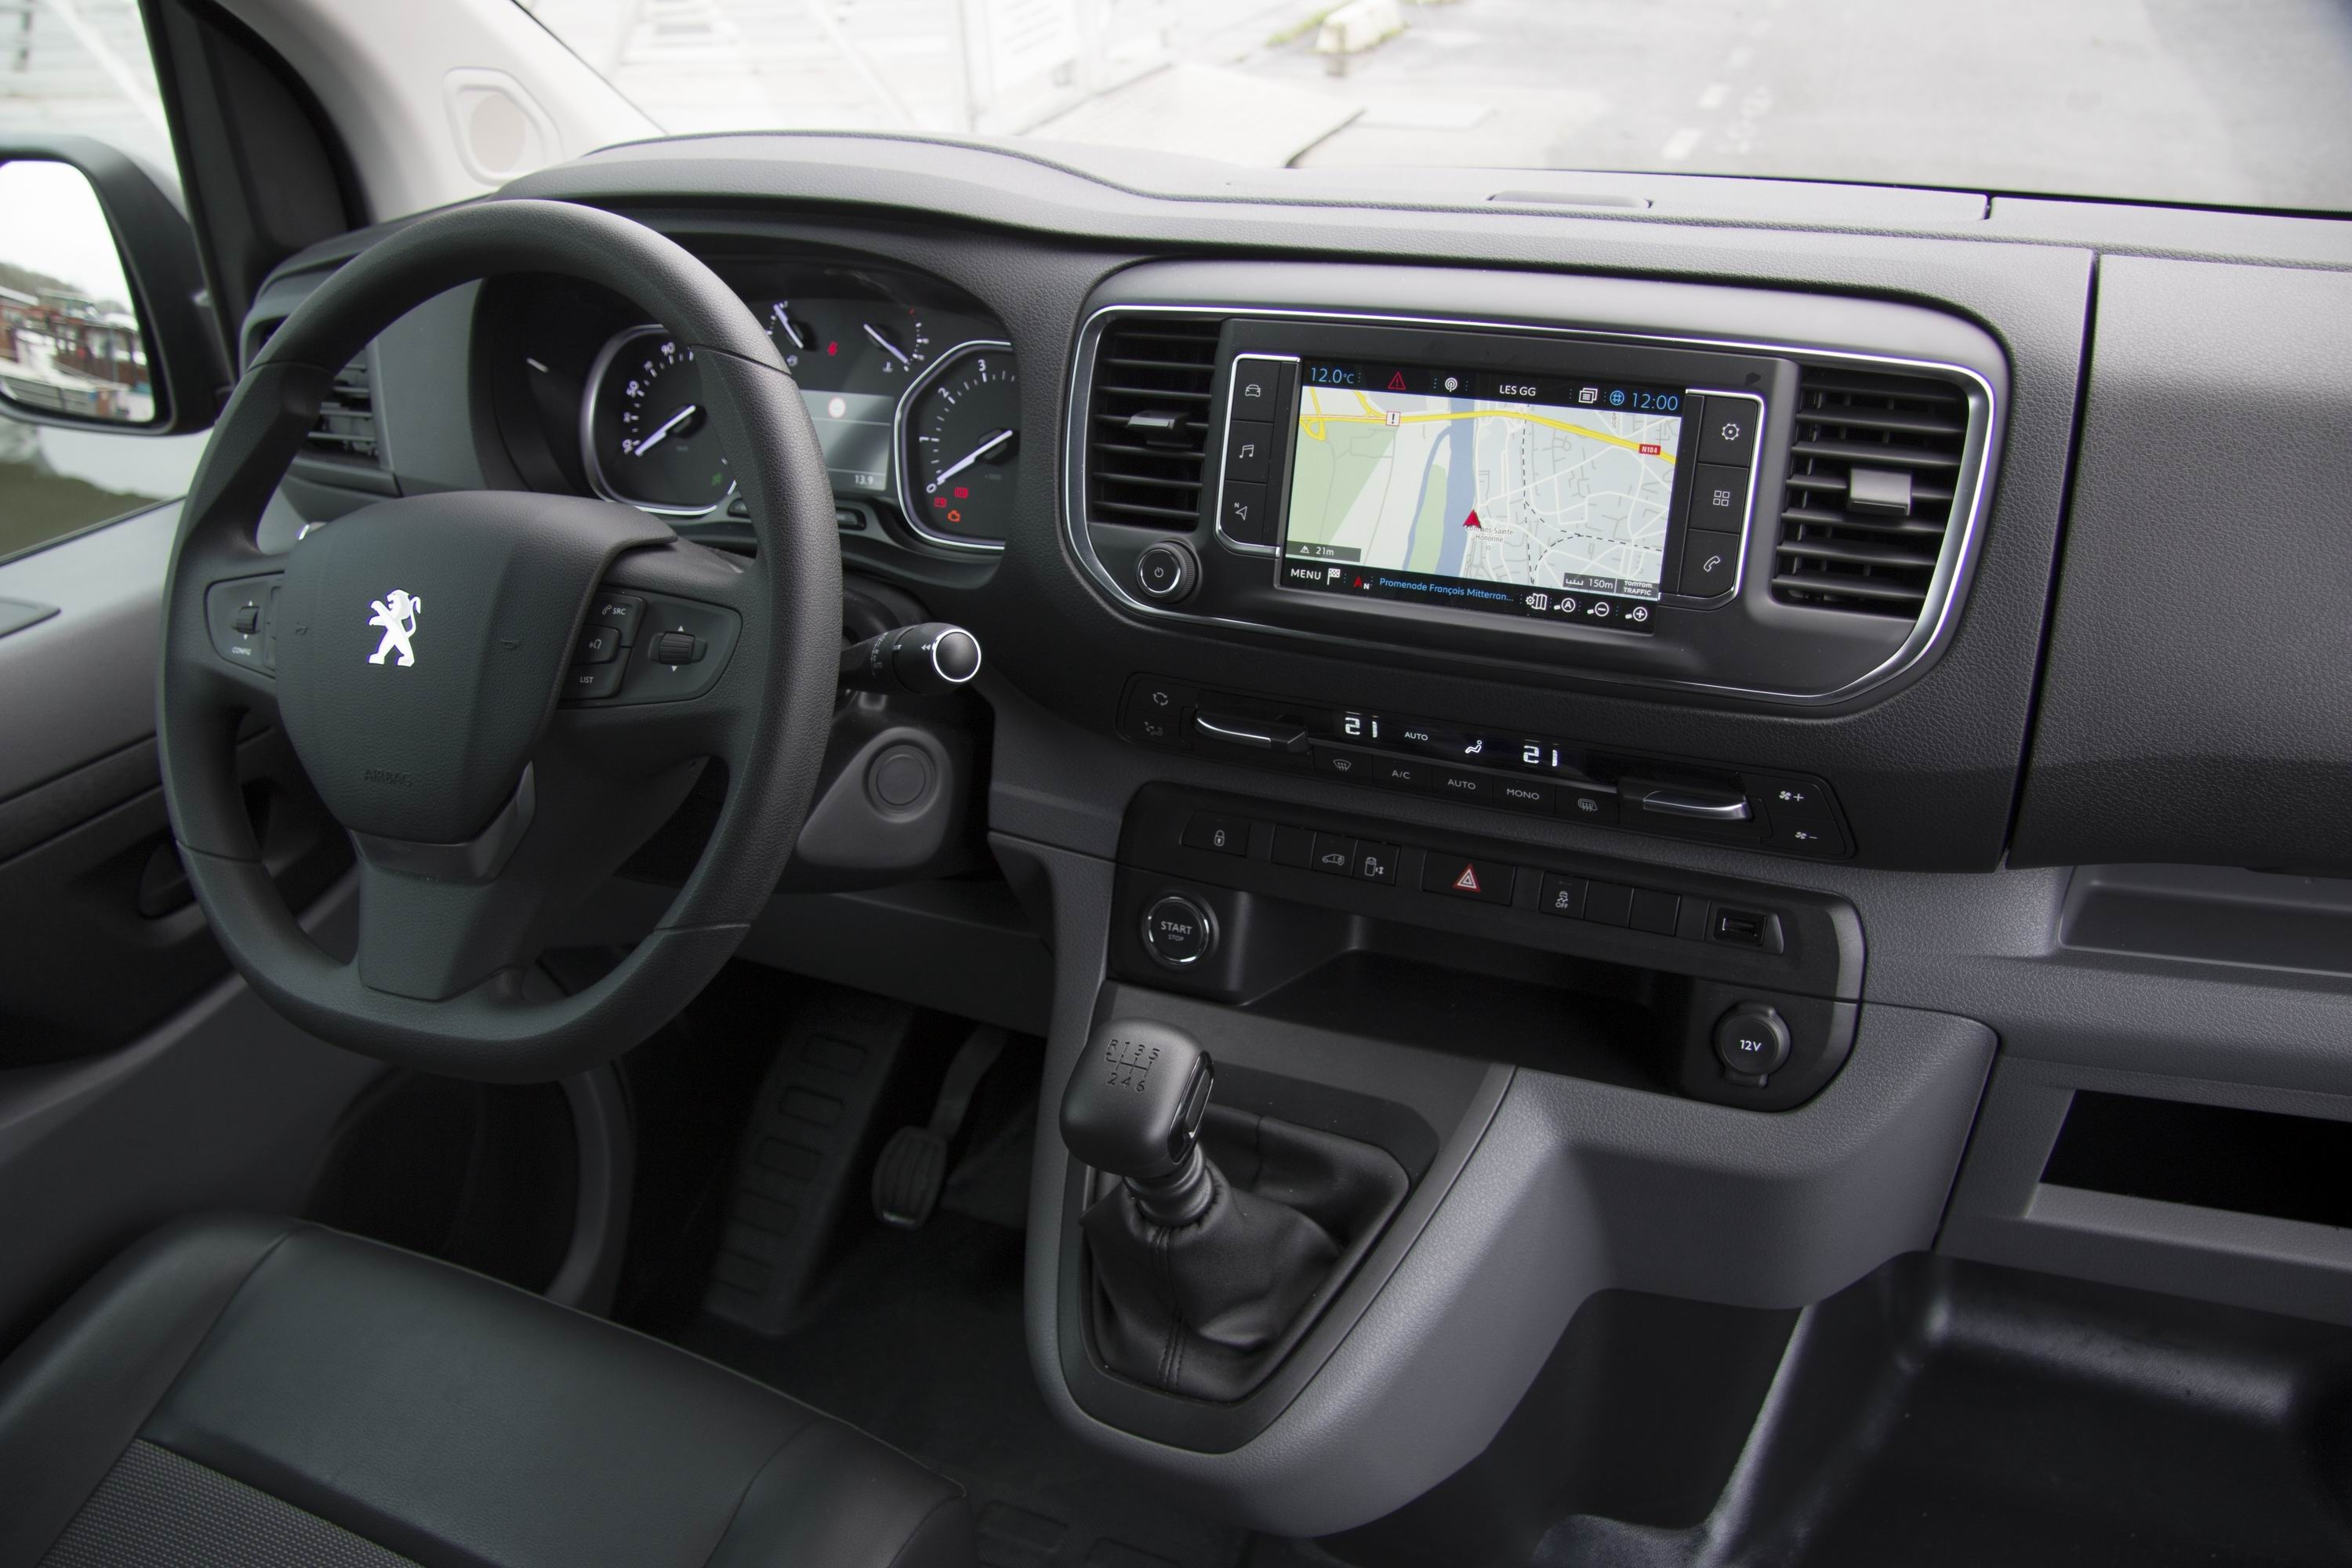 Essai peugeot expert un coup de ma tre for Interieur 807 8 places